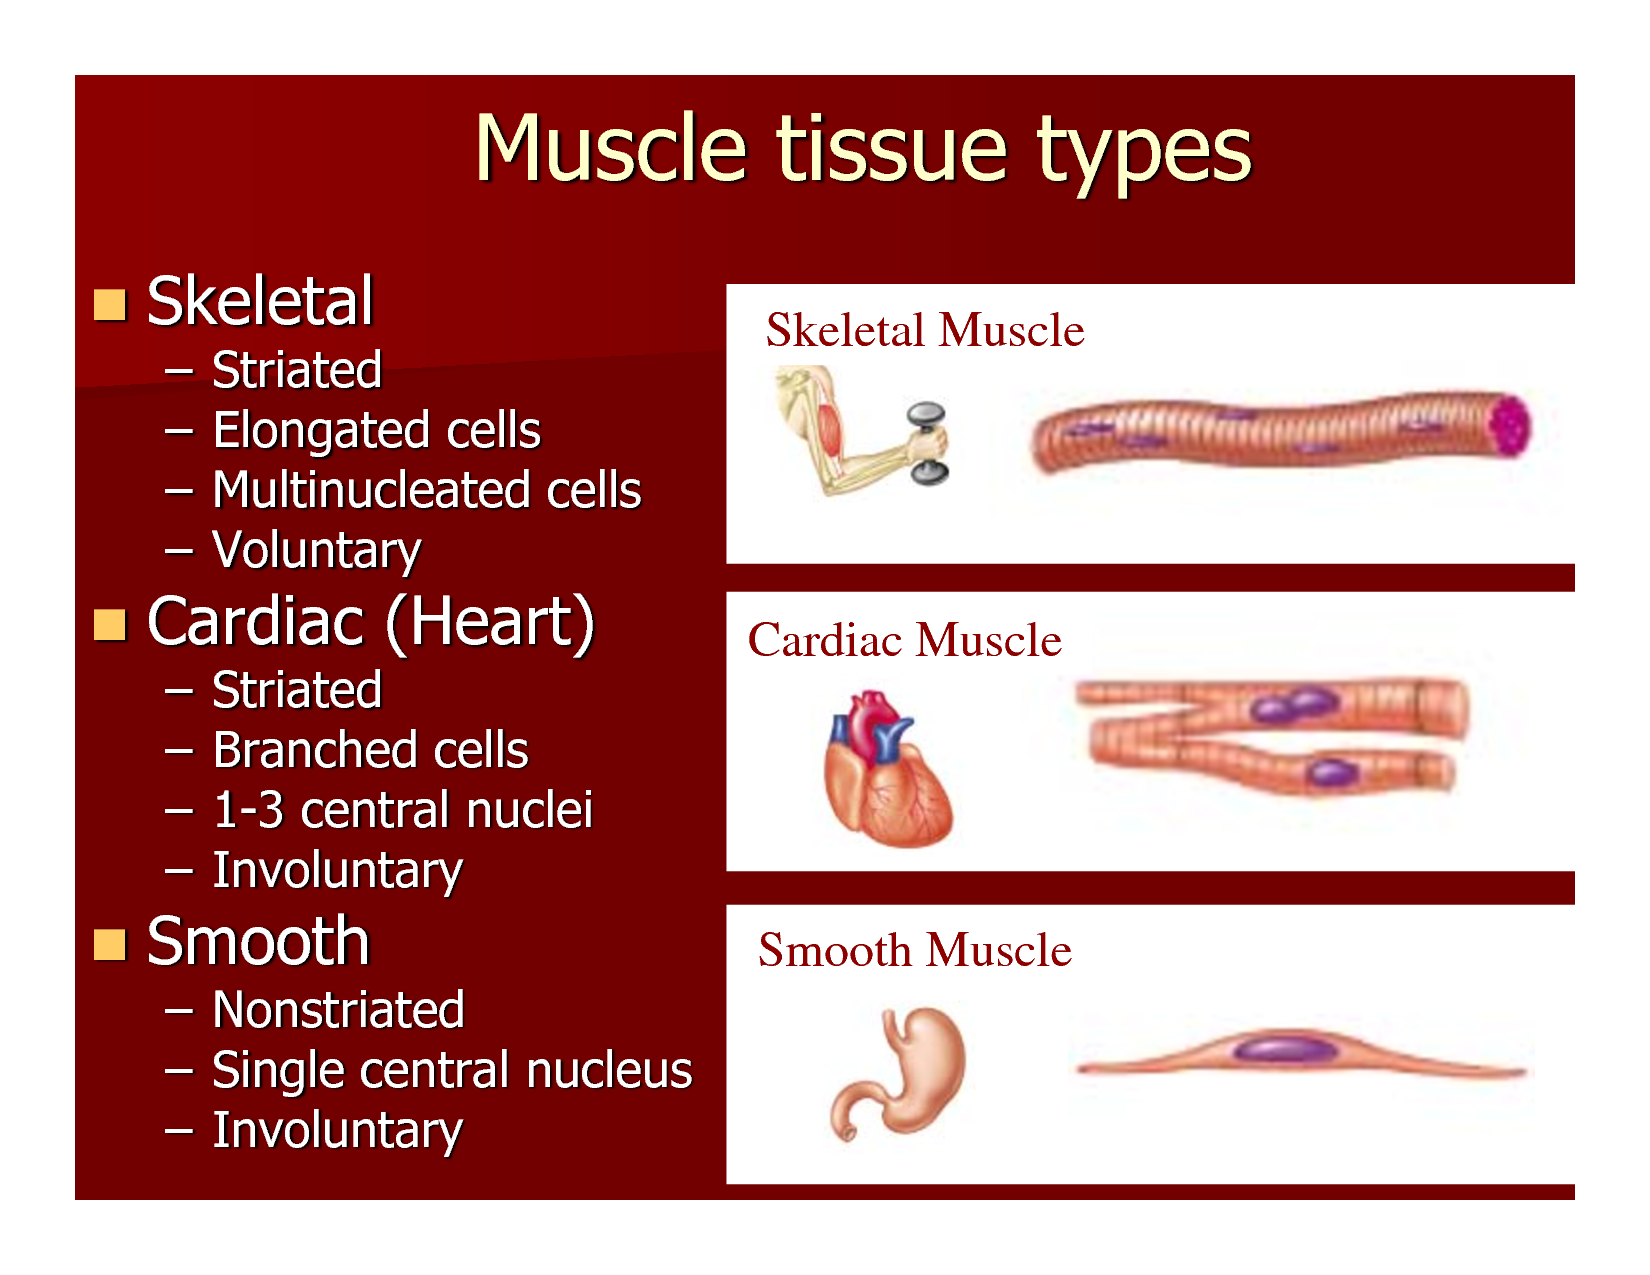 skeletal tissue; skeletal muscle is the most abundant tis